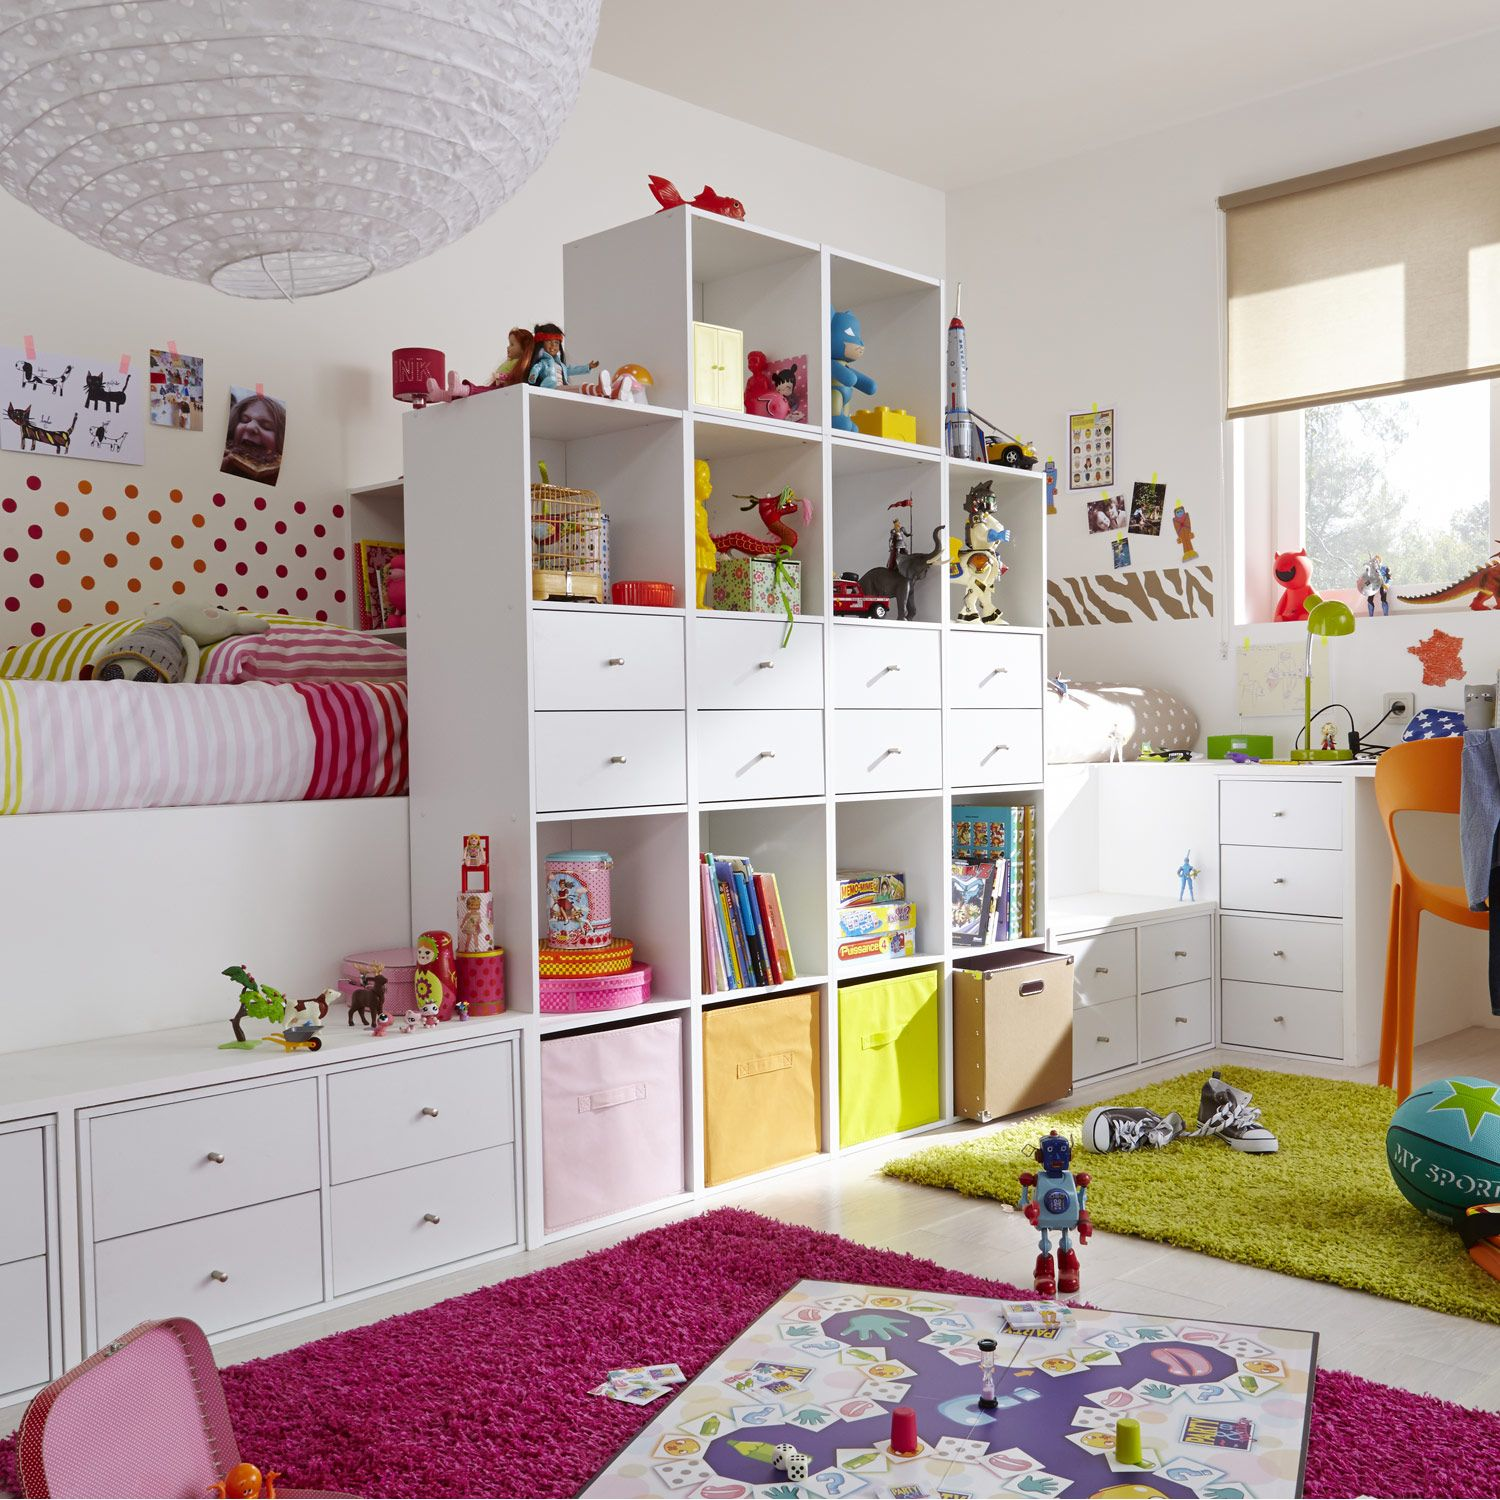 Am nagement d coratif multikaz 32 chambre d 39 enfant leroy merlin deco pinterest leroy for Amenagement bureau enfant